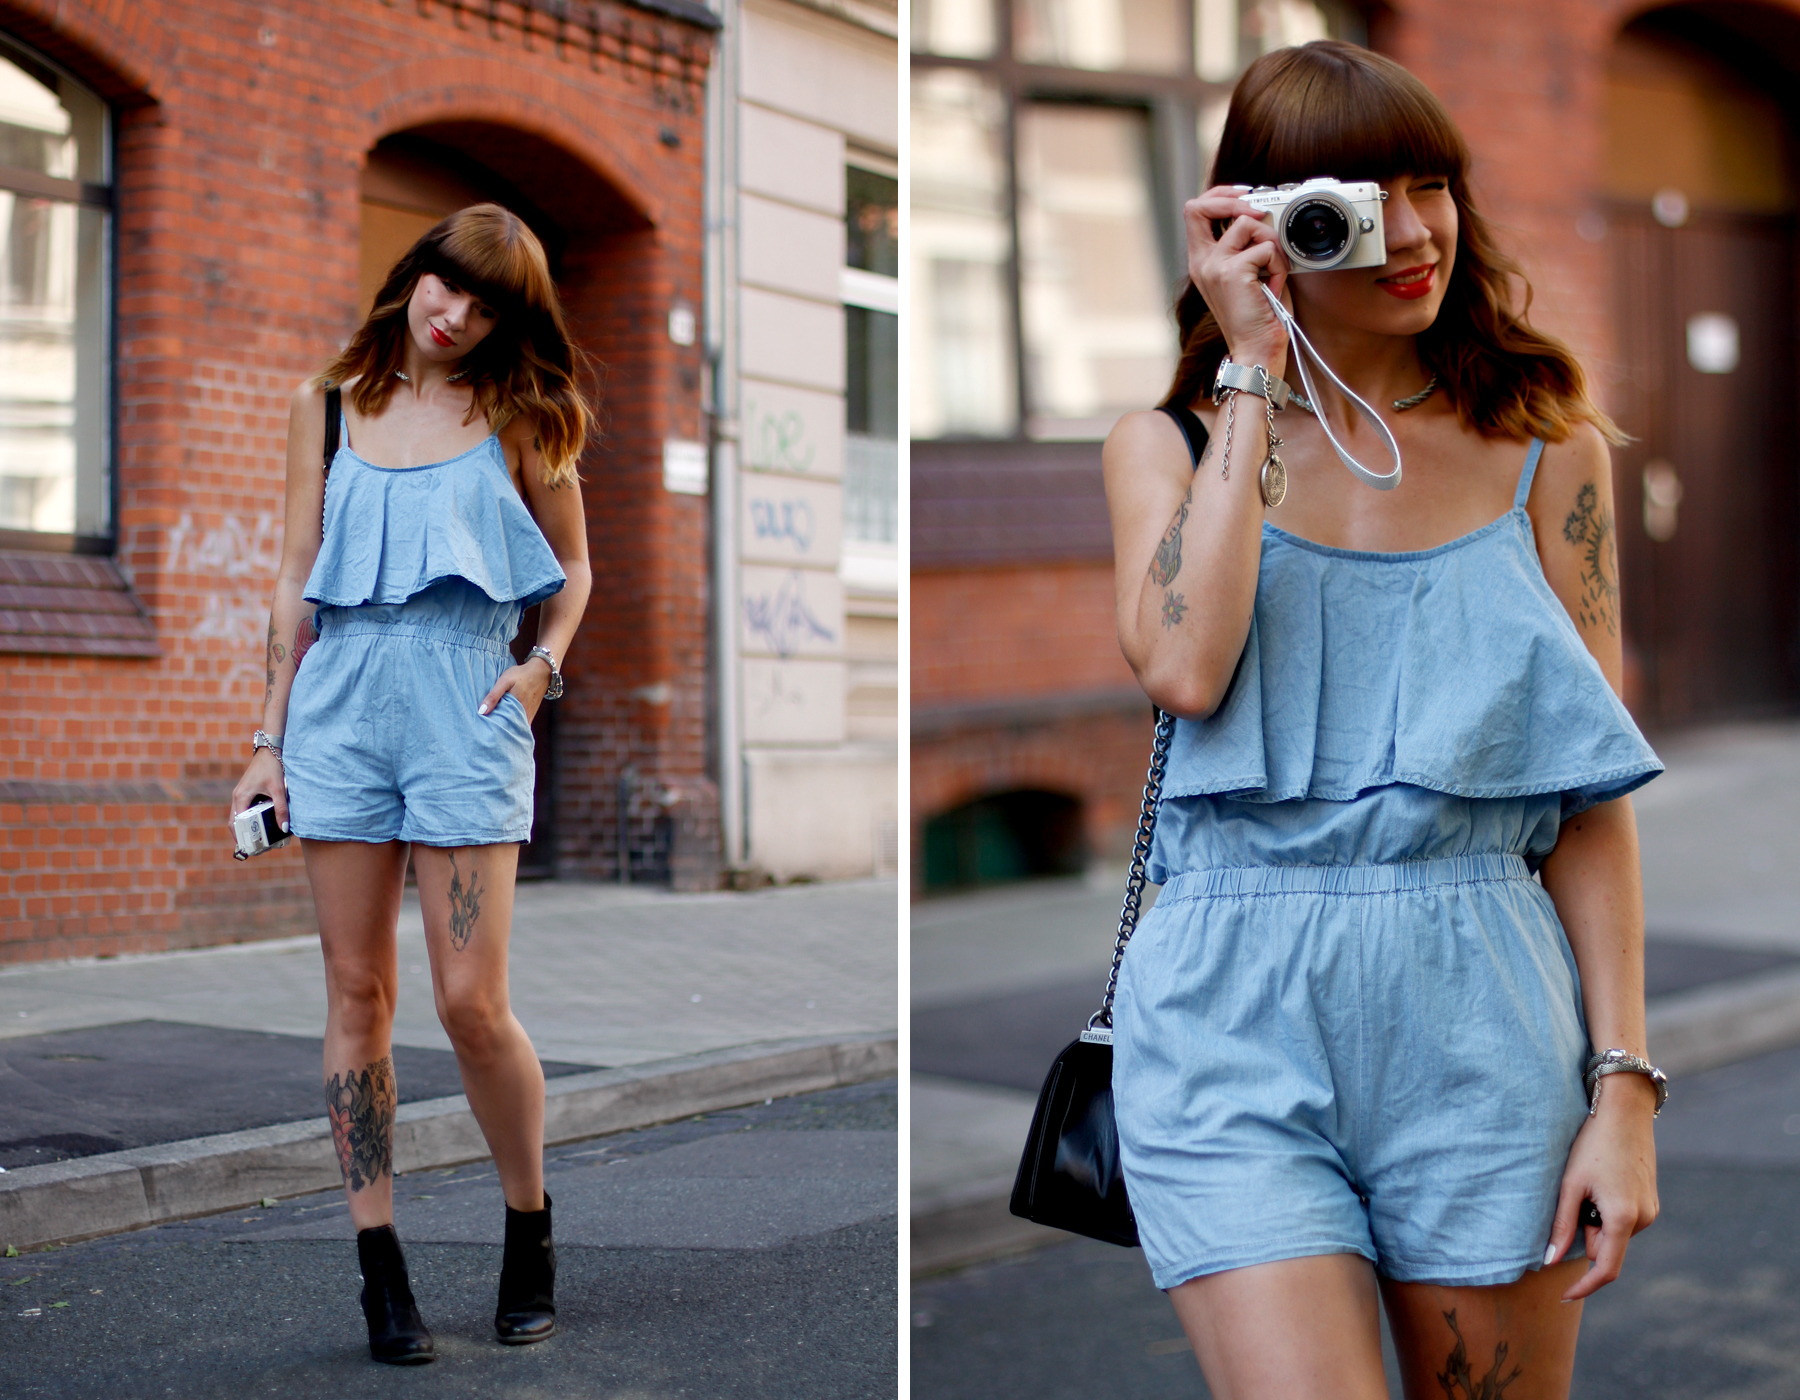 anziehend düsseldorf denim blue jumpsuit overall hellblau jeans chanel boots late summer spätsommer outfit ootd look cats & dogs ricarda schernus 5